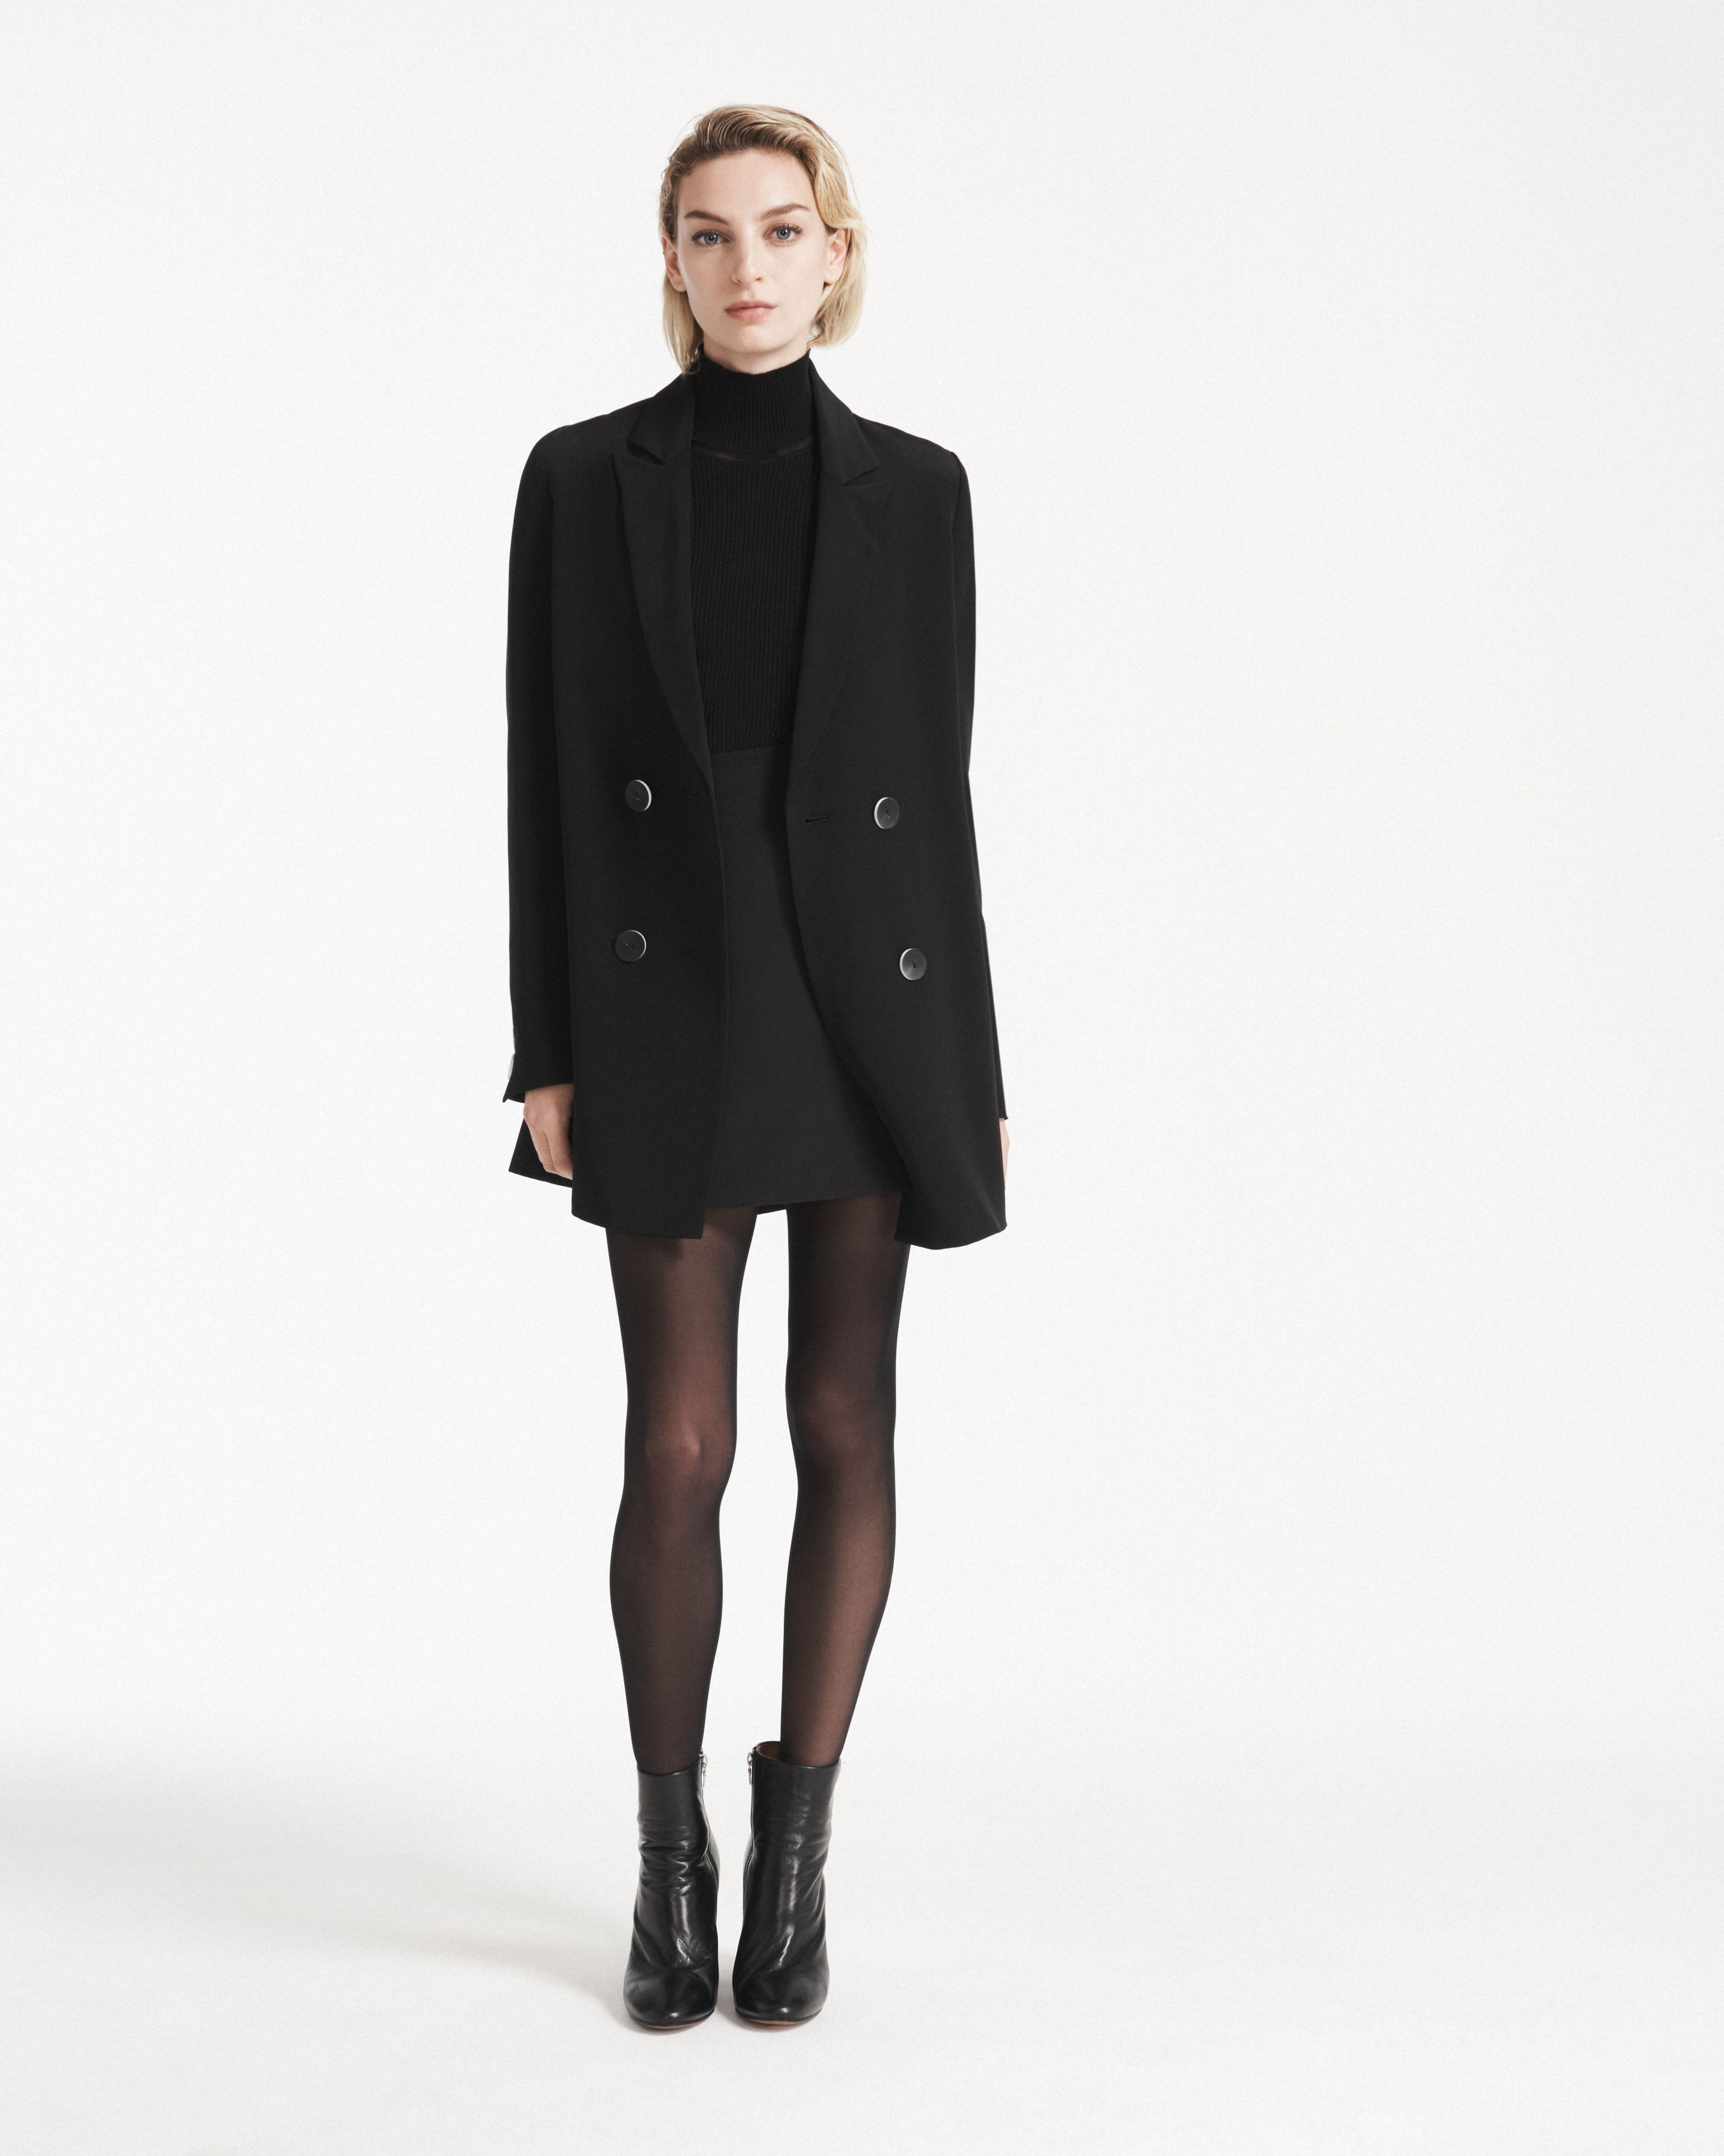 2a236f14223a The Austen Skirt and Beatrice Turtleneck worn with the Florence Blazer Dress